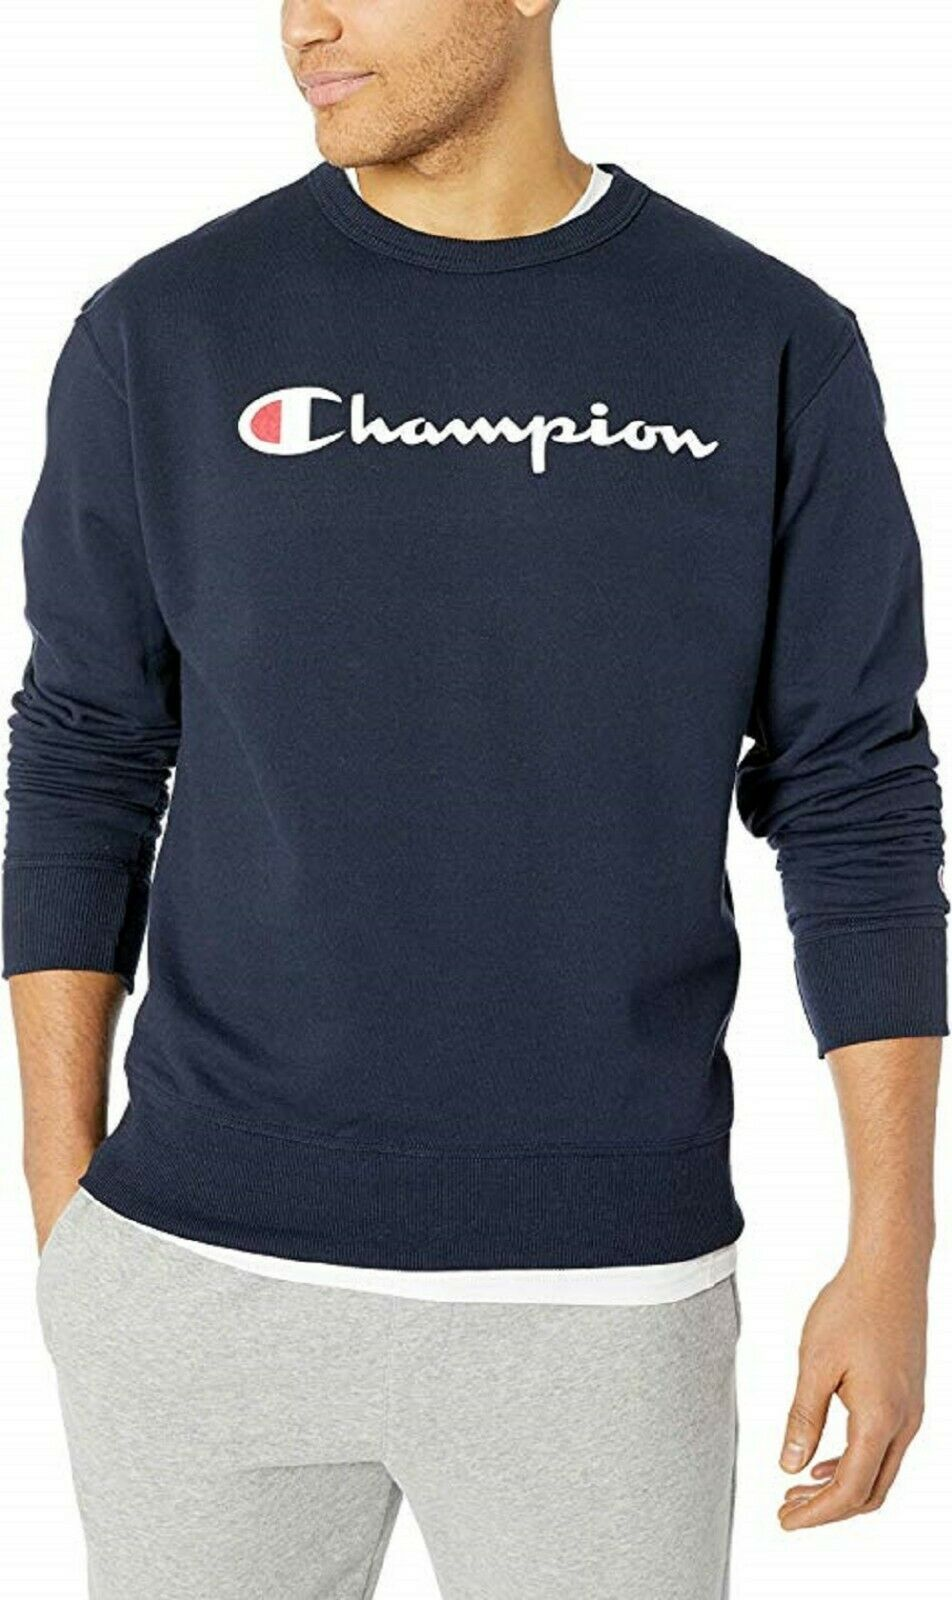 Men's Champion Powerblend Script Navy Crewneck Sweatshirt Adult XXL